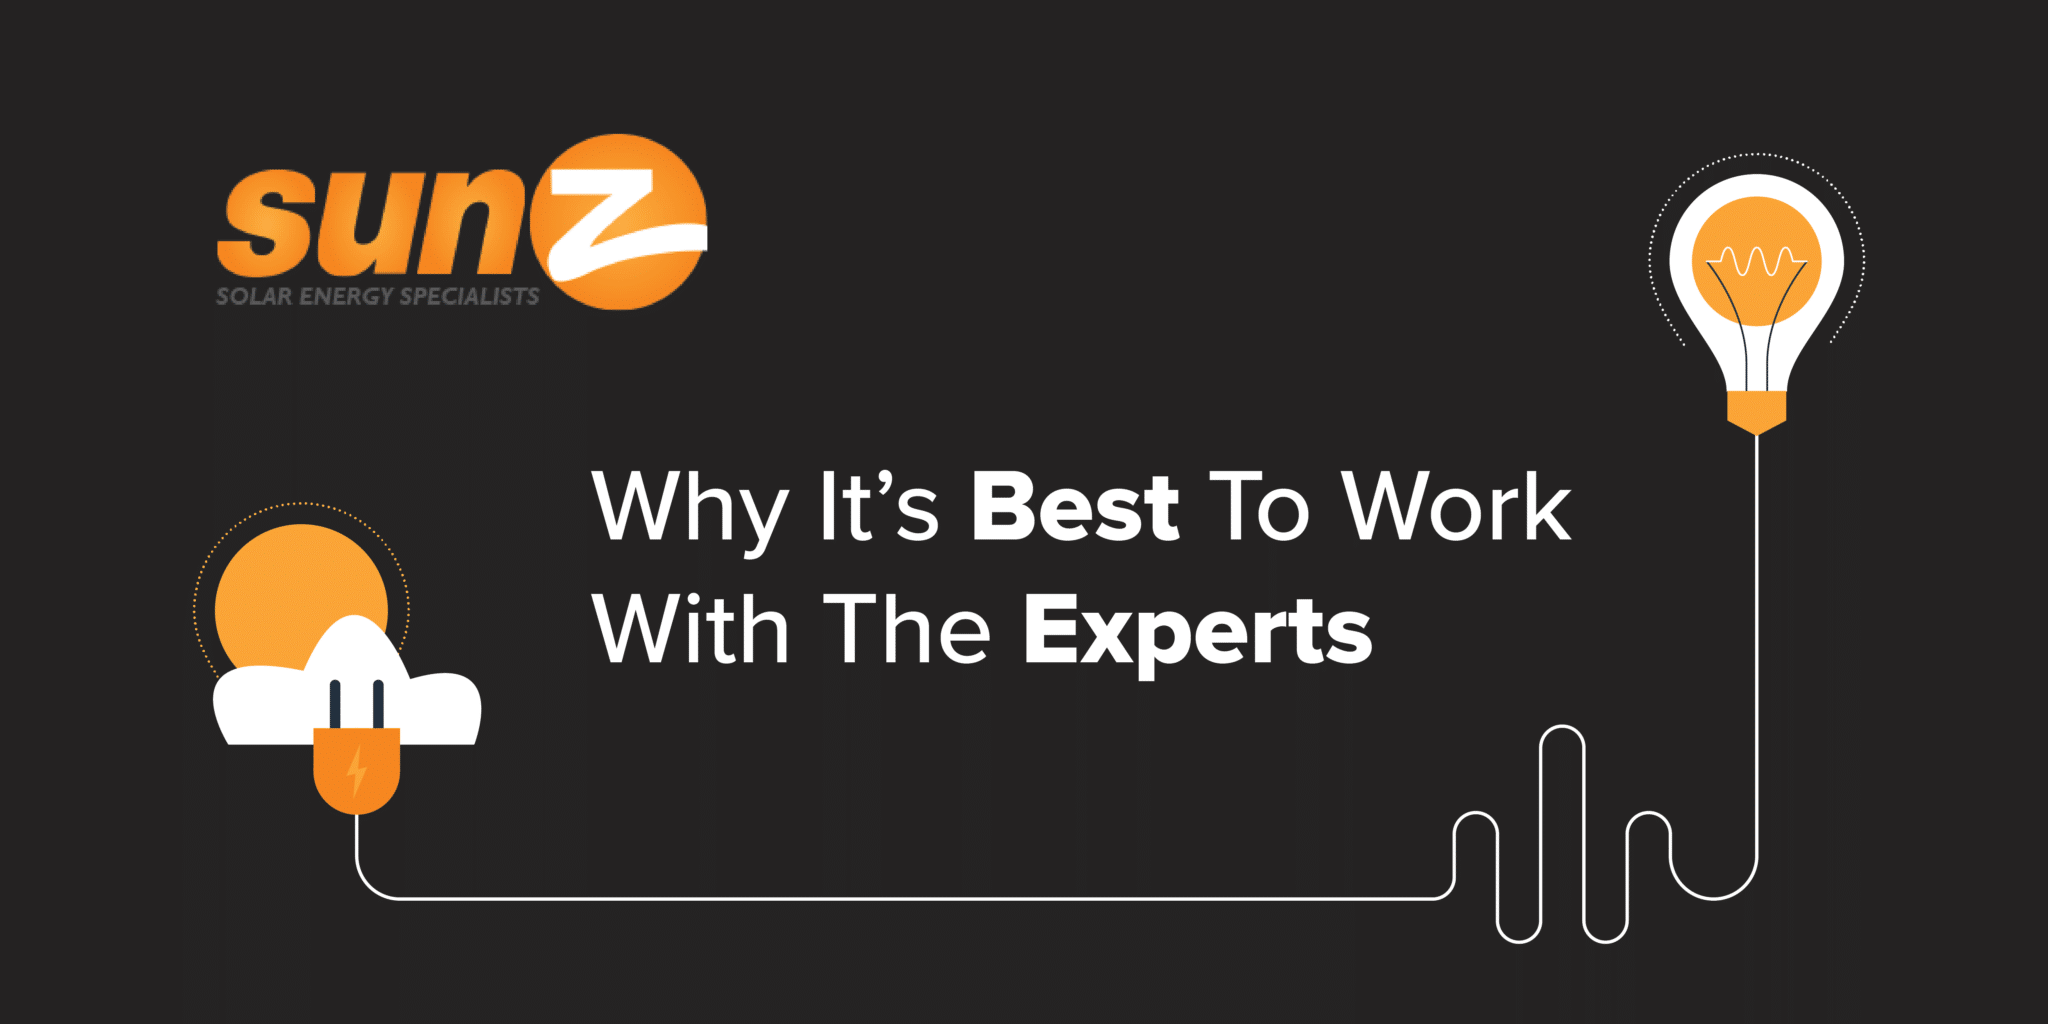 Why It's Best To Work With The Experts